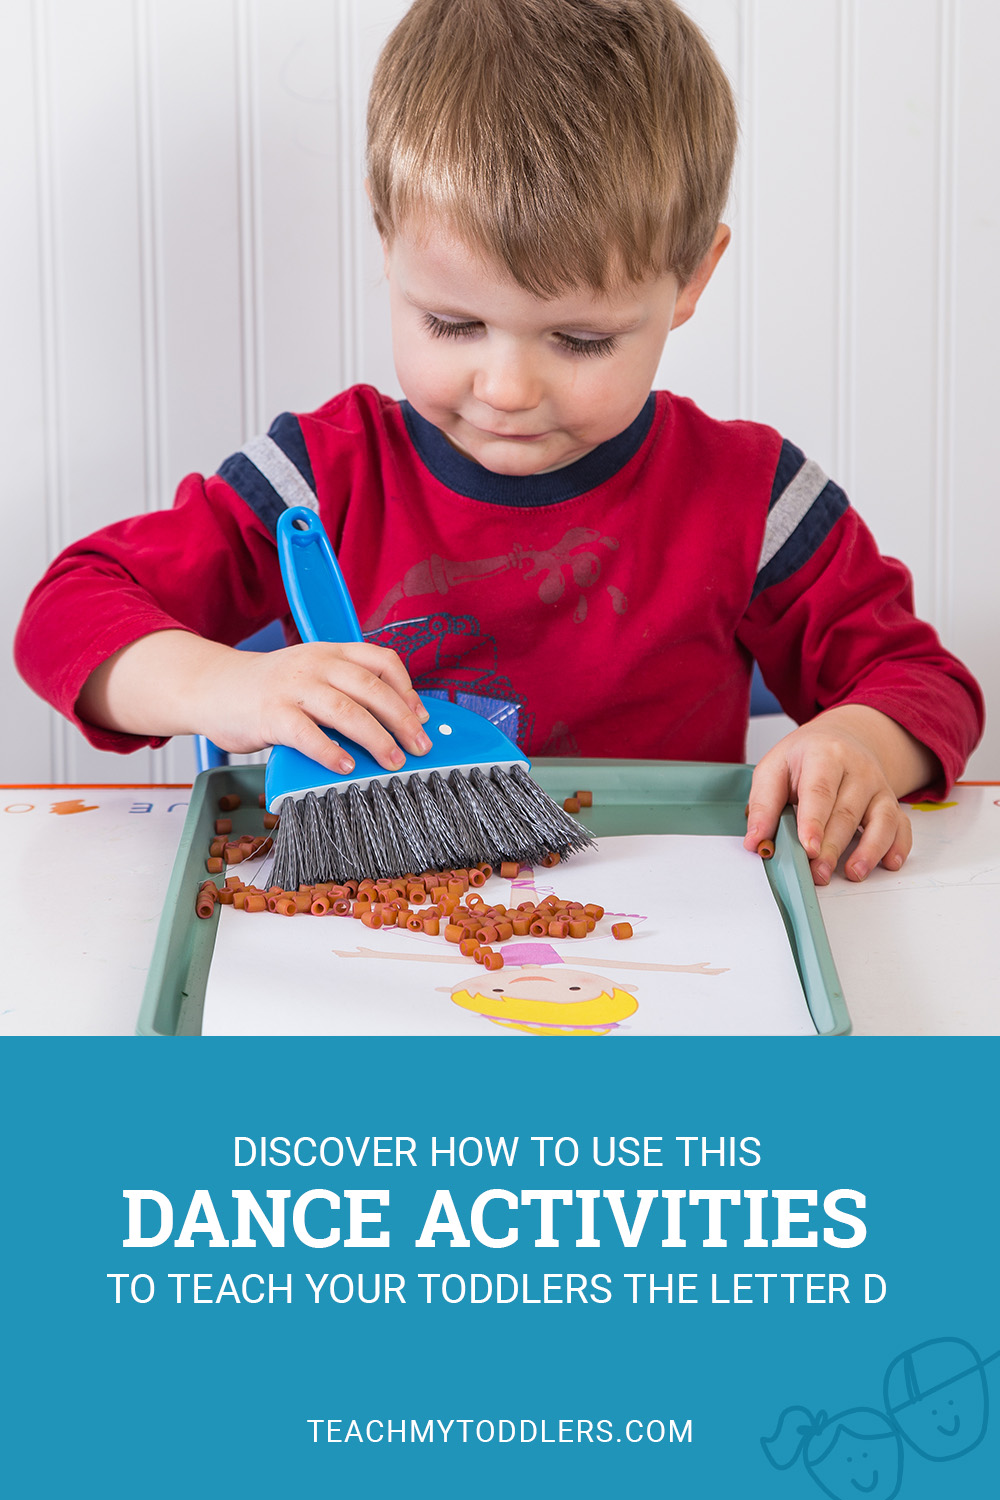 Discover how to use this d is for dance activities to teach your toddlers the letter d